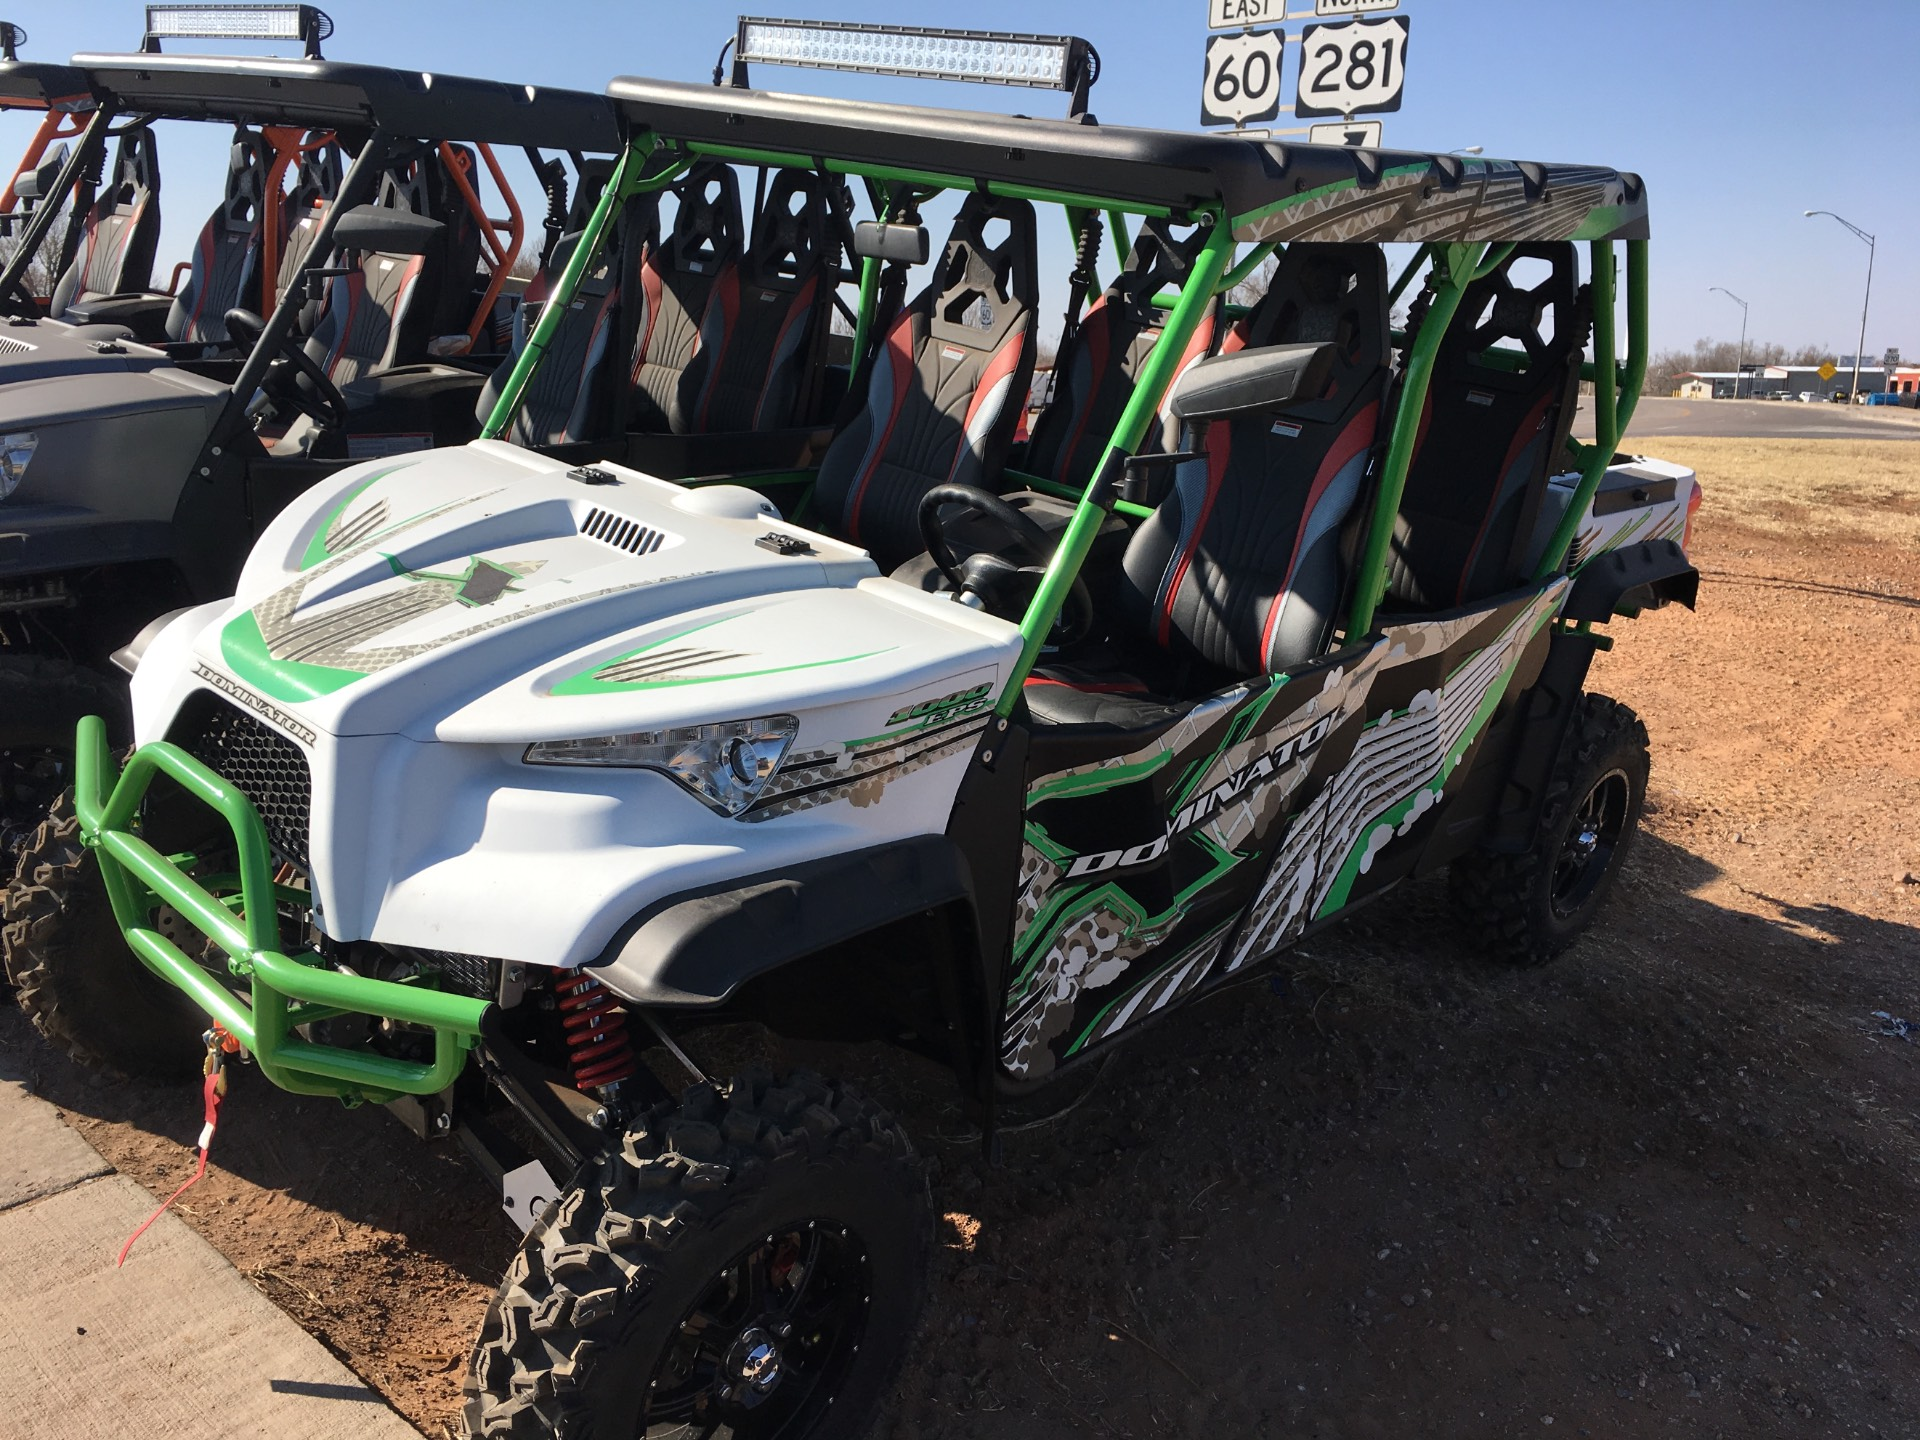 2018 Odes Dominator X4 SE Zeus 1000 in Seiling, Oklahoma - Photo 1